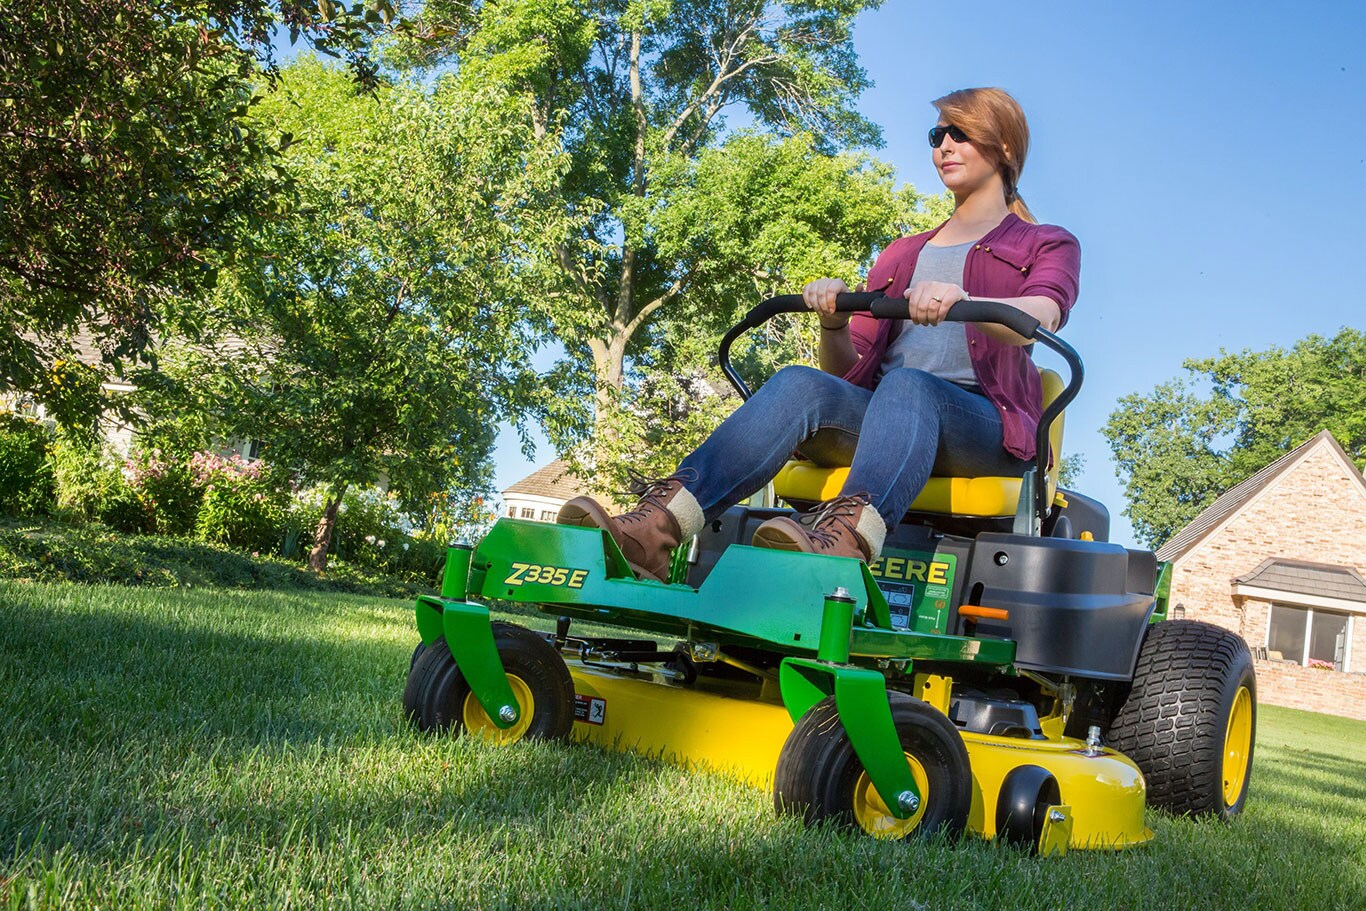 Updated John Deere Residential Zero-Turn Mowers Mow Well and Mow Fast